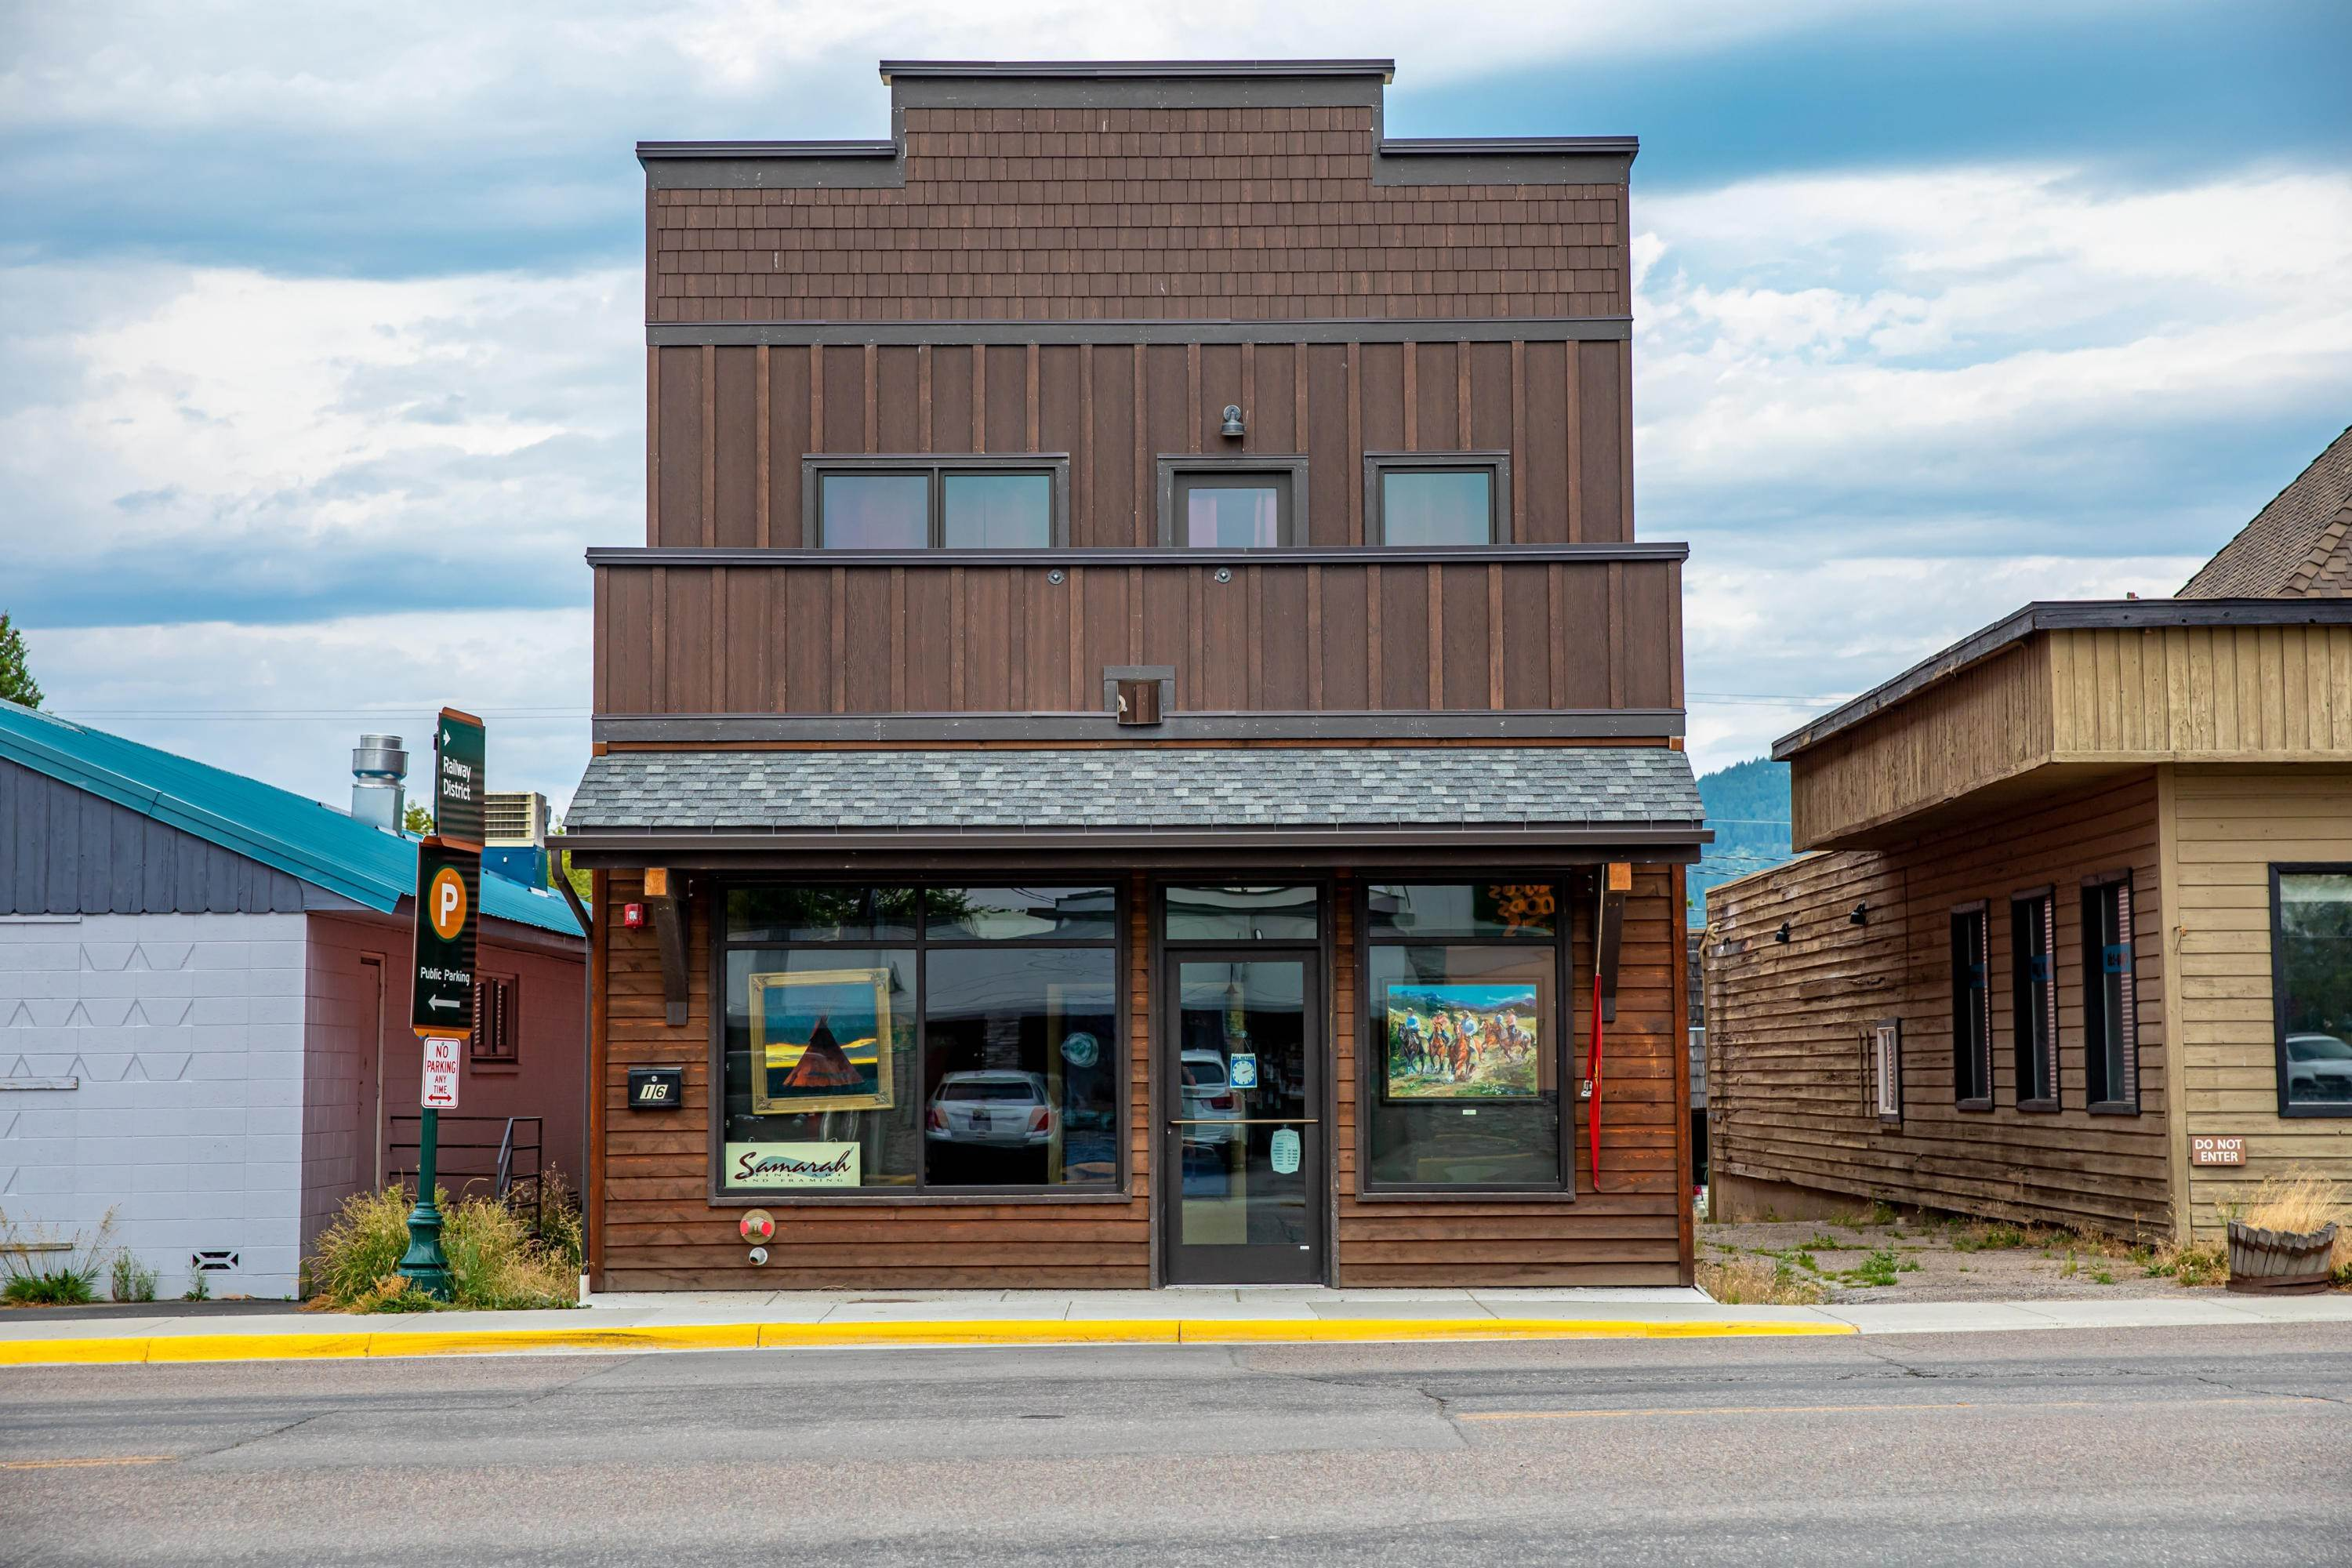 Commercial for Sale at 16 Baker Avenue Whitefish, Montana 59937 United States